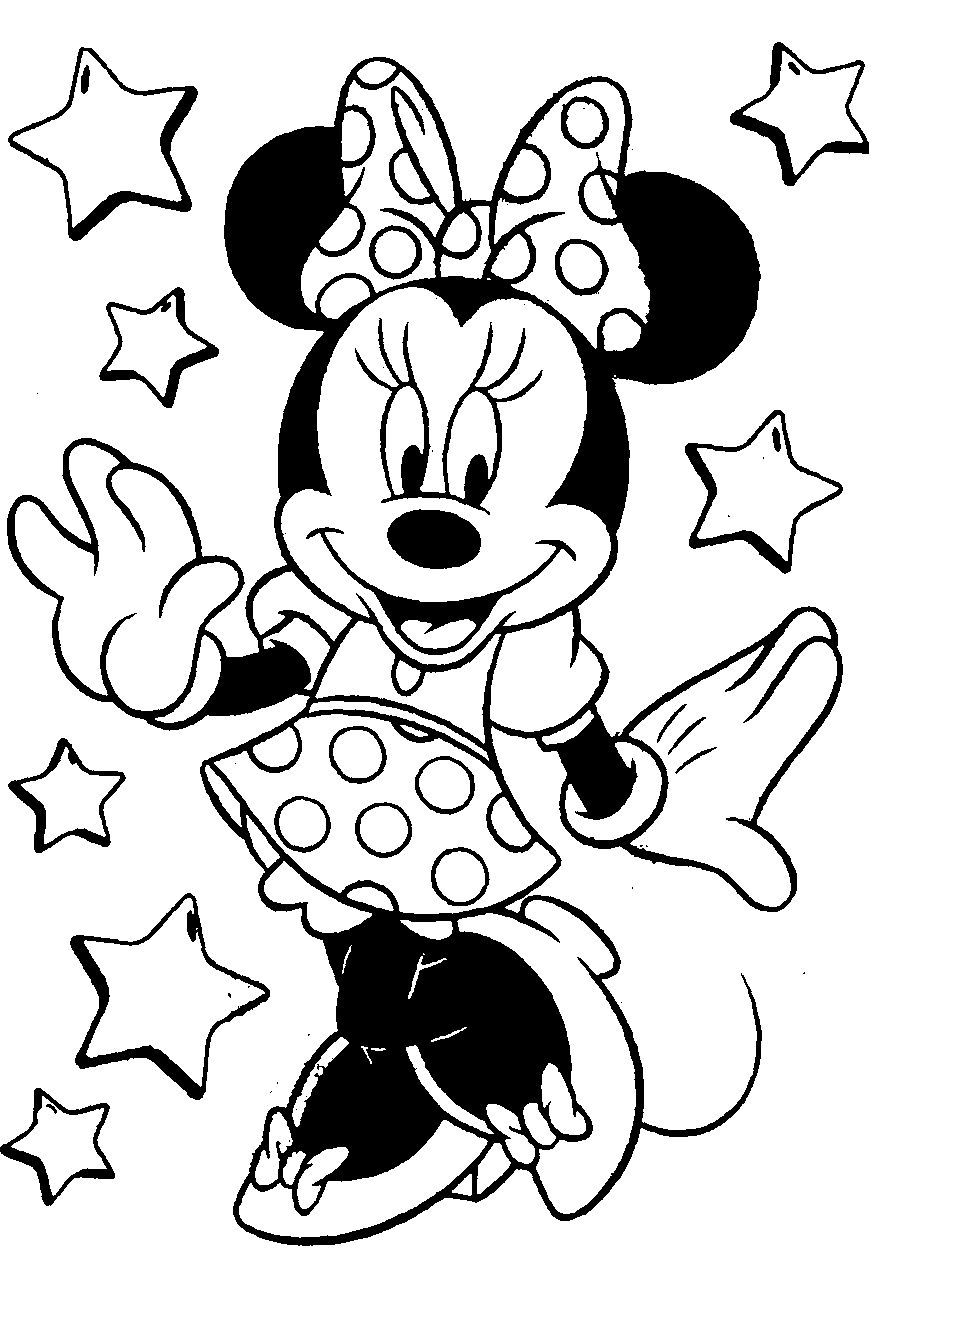 Mickey And Minnie Mouse Coloring Pages Pdf Mickey And Minnie Mouse Coloring Page Minnie Mouse Coloring Pages Mickey Mouse Coloring Pages Disney Coloring Pages